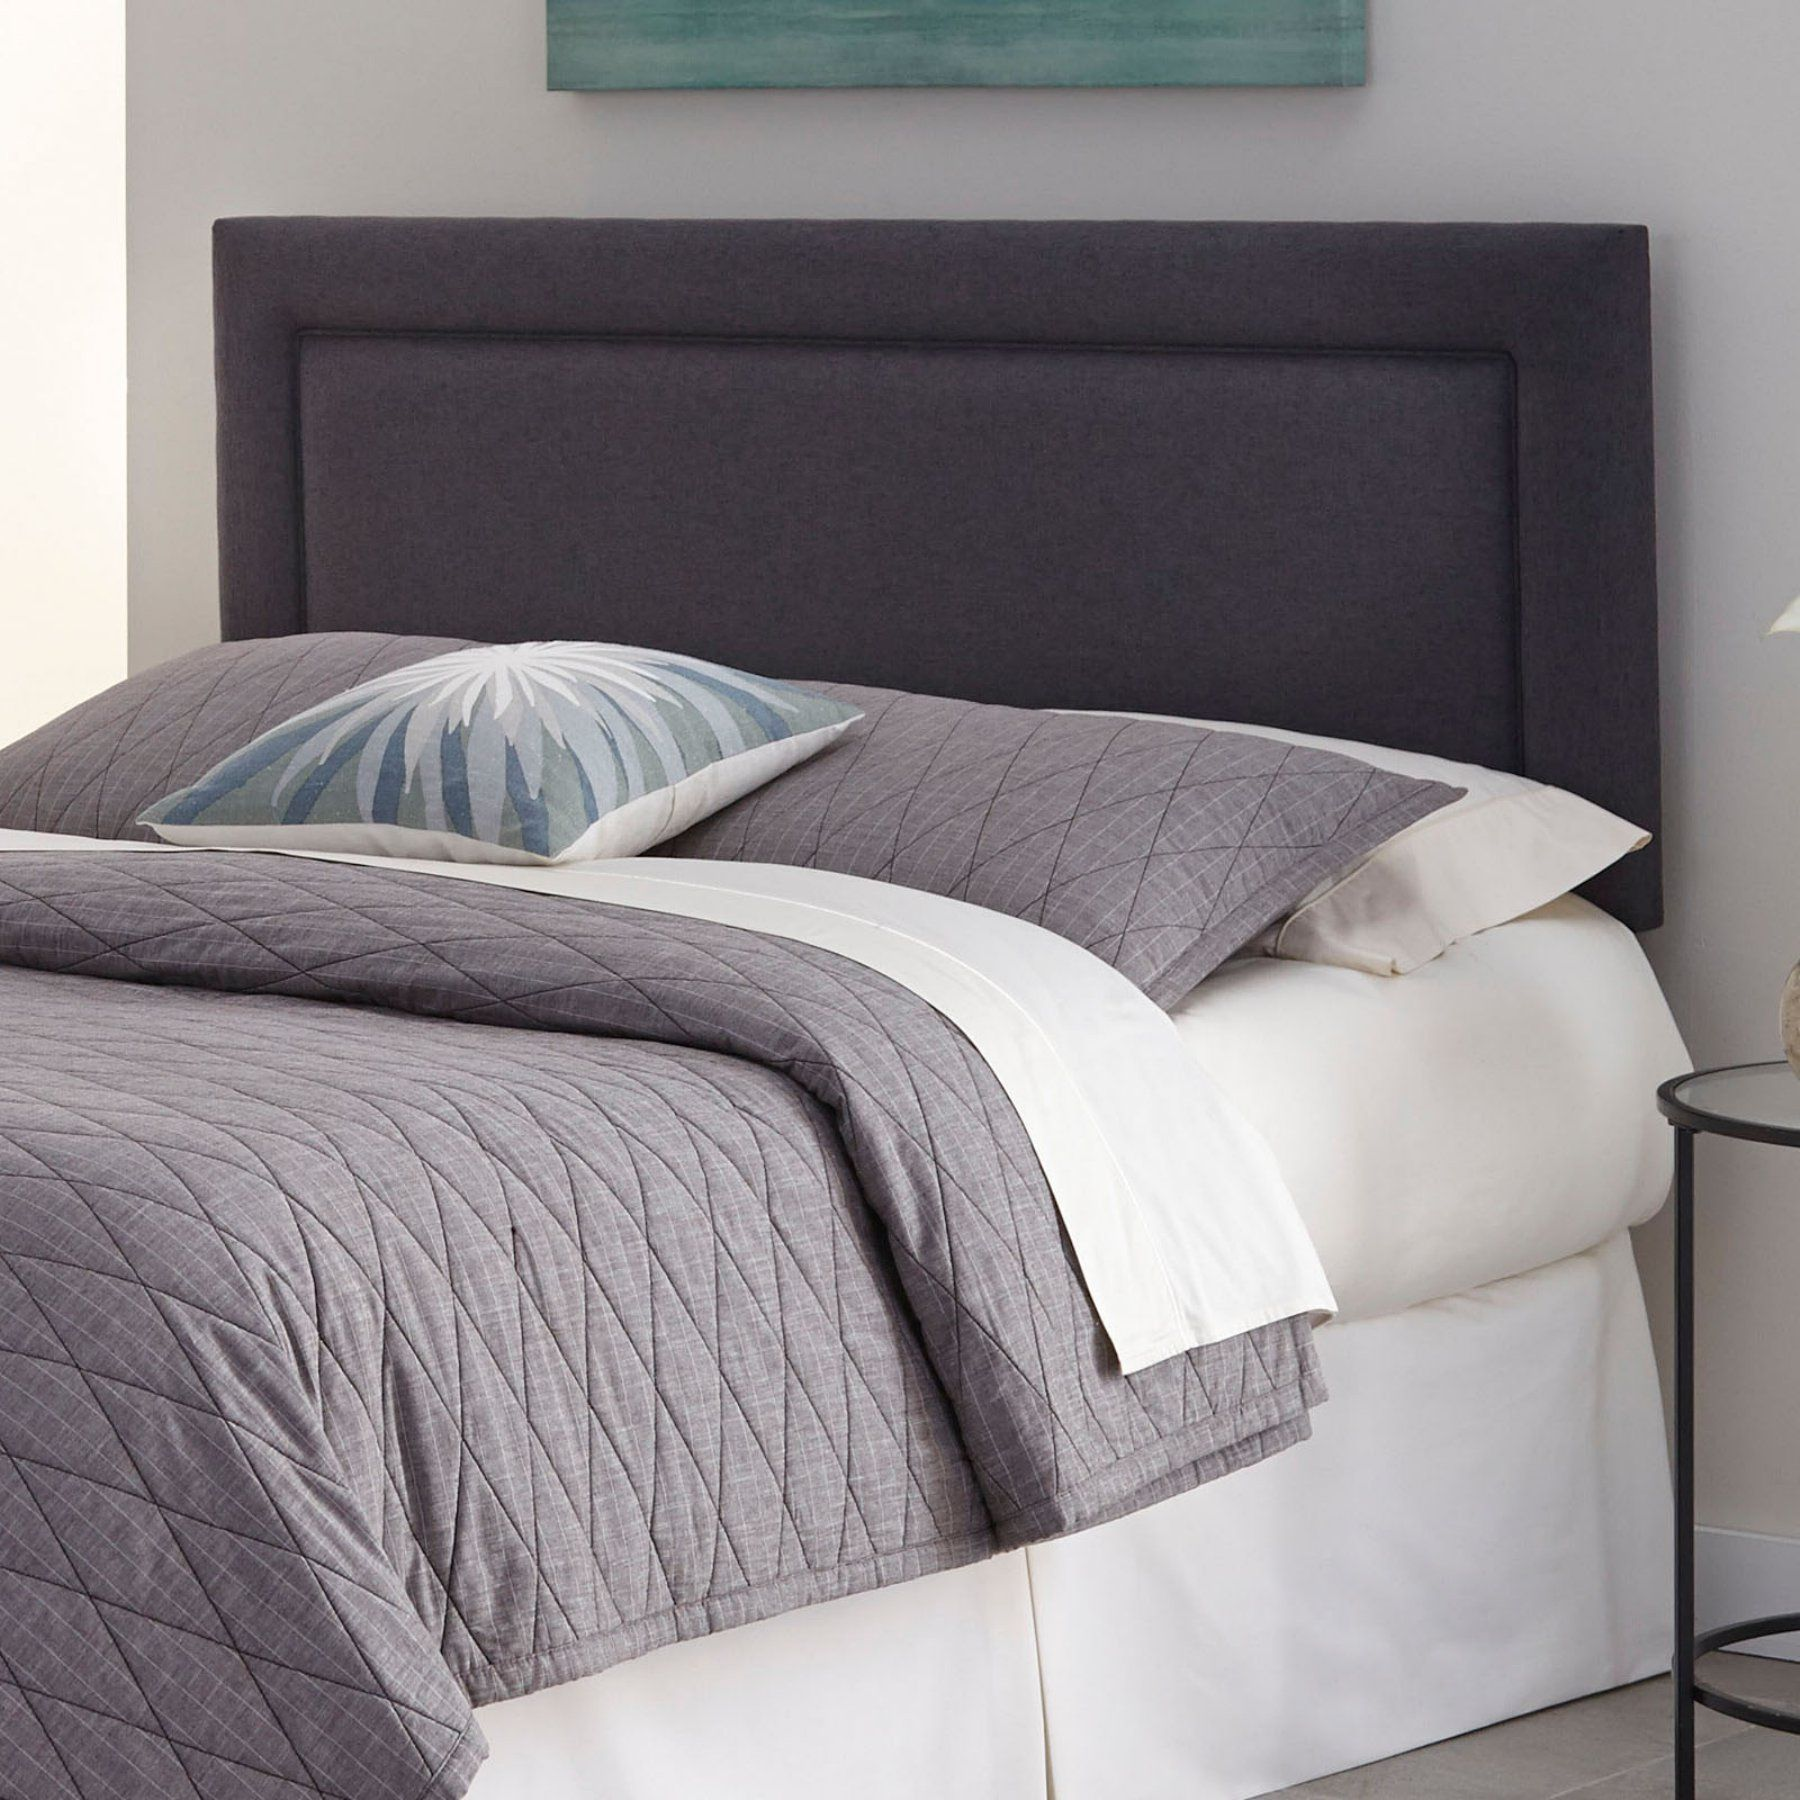 Fashion Bed Group Somerset Upholstered Headboard B72183